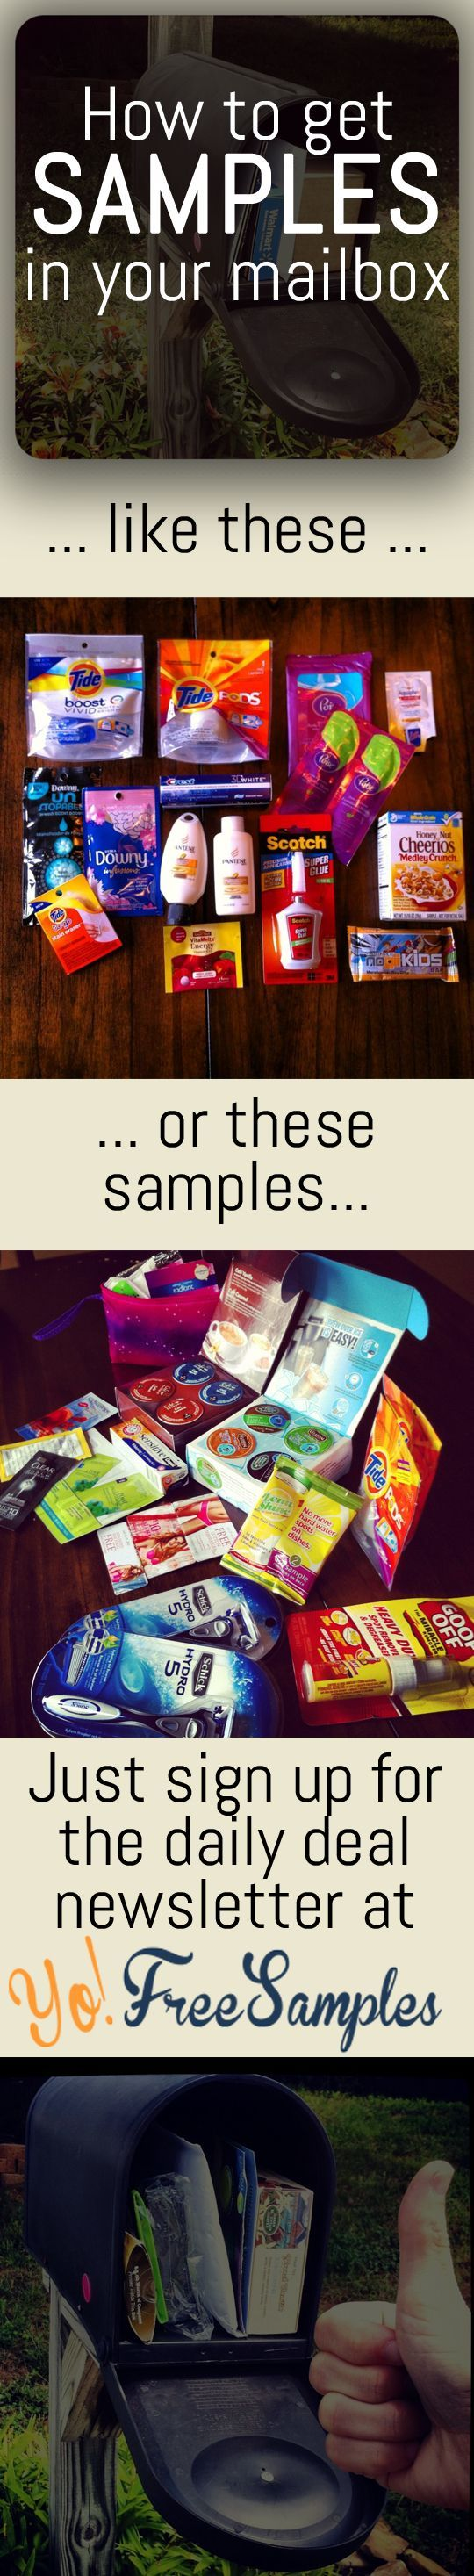 """Get free stuff by mail with daily updates: http://yofreesamples.com/sign-up-for-totally-free-samples-by-mail/?utm_source=pinterest&utm_medium=organic&utm_campaign=yfsn1-desc  This isn't your average """"real"""" free samples website. Each freebie has step by step instructions on getting verified received free samples.  John 'Samples' Clark tests every single freebie on the site and verifies what arrives and what didn't. Yo! Free Samples: http://yofreesamples.com/sign-up-for-totally-free-samples-by-mai"""